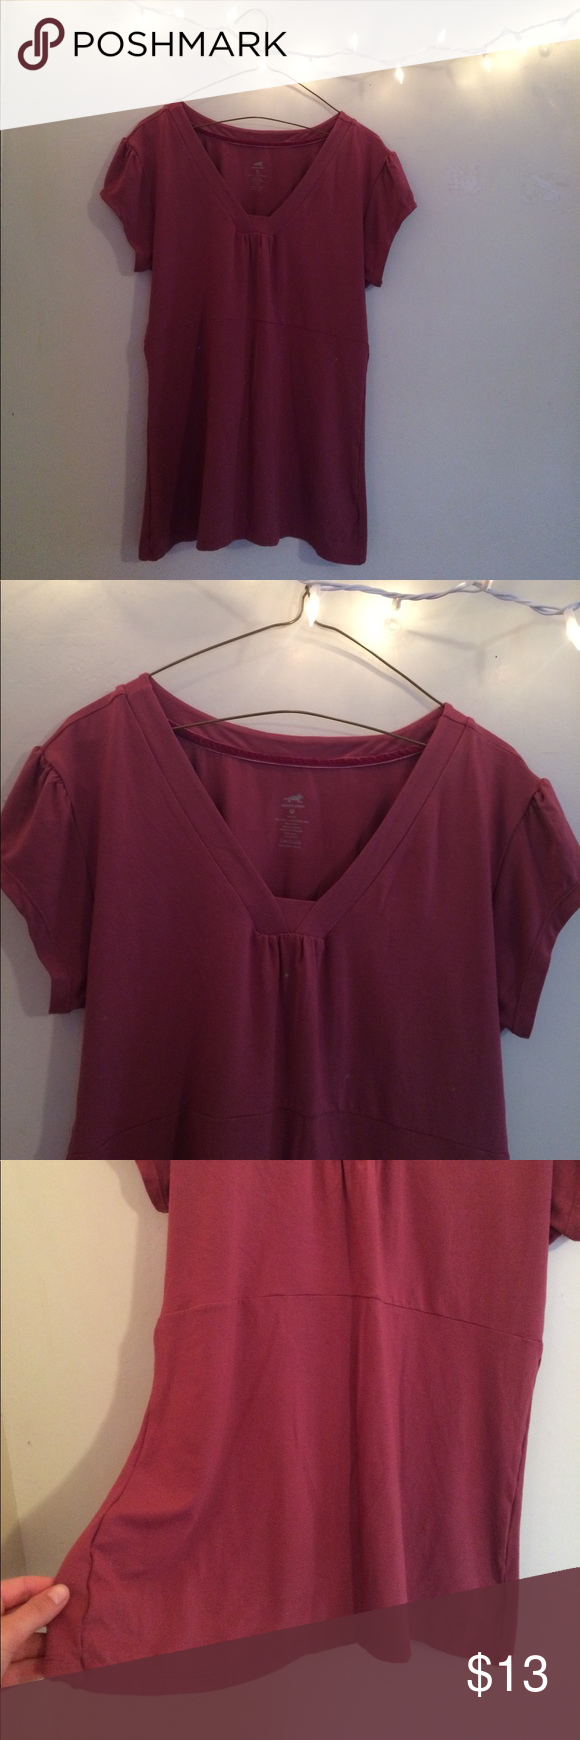 NWOT Horny Toad Mambo Top Pale pink Horny Toad tunic. This piece was purchased brand new, but never fit 😭 I caution the buyer, although it is a size extra large, it doesn't fit big breasts. There are no stains or rips! It's texture is so soft; 94% micro modal, 6% spandex. This top is perfect for yoga or hiking, but also work and everyday wear! Someone take it to a good home ❤️ 🐶pet friendly home🐶🚭smoke free home🚭 Horny Toad Tops Tunics